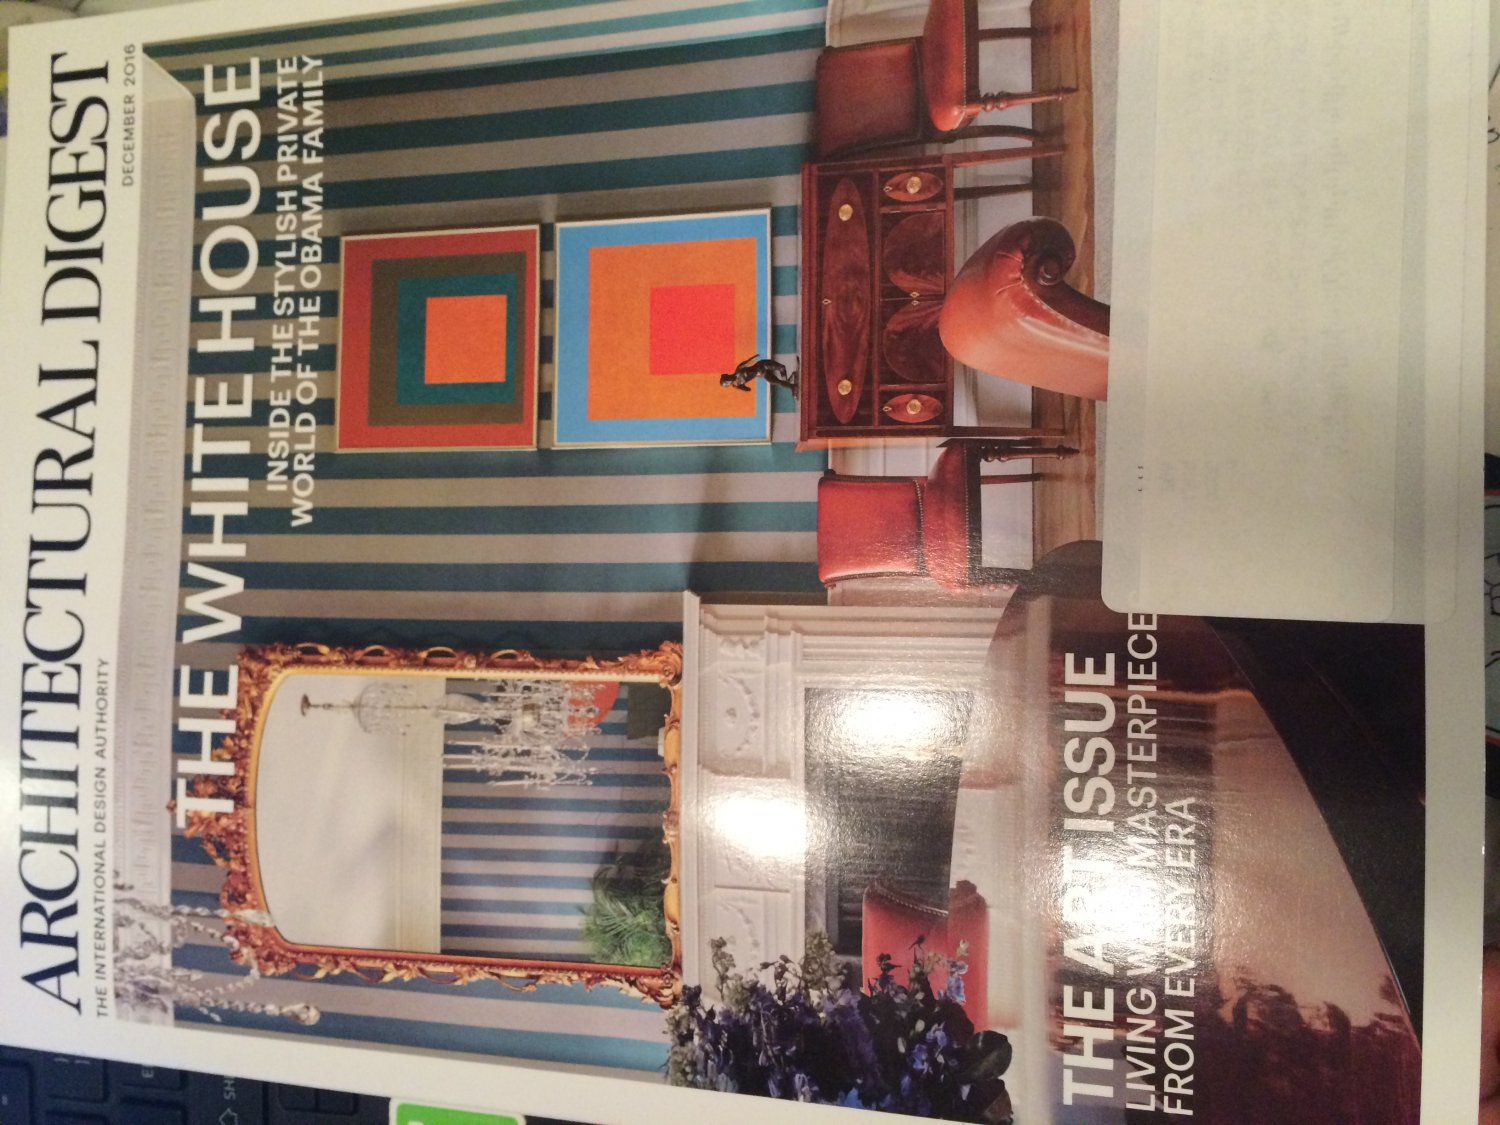 Architectural Digest Magazine (December, 2016) The White House